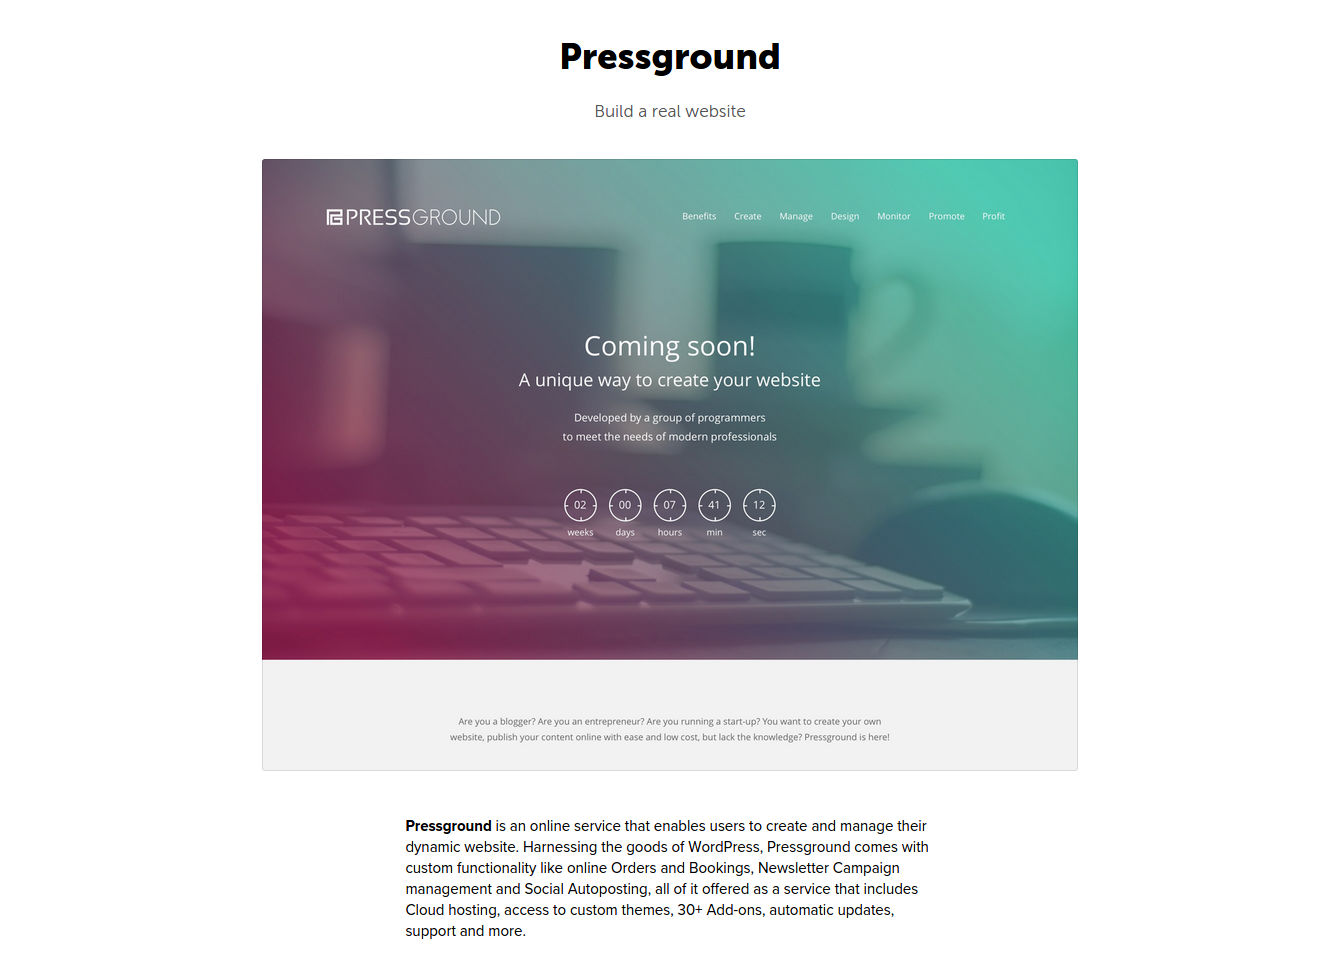 pressground on betalist